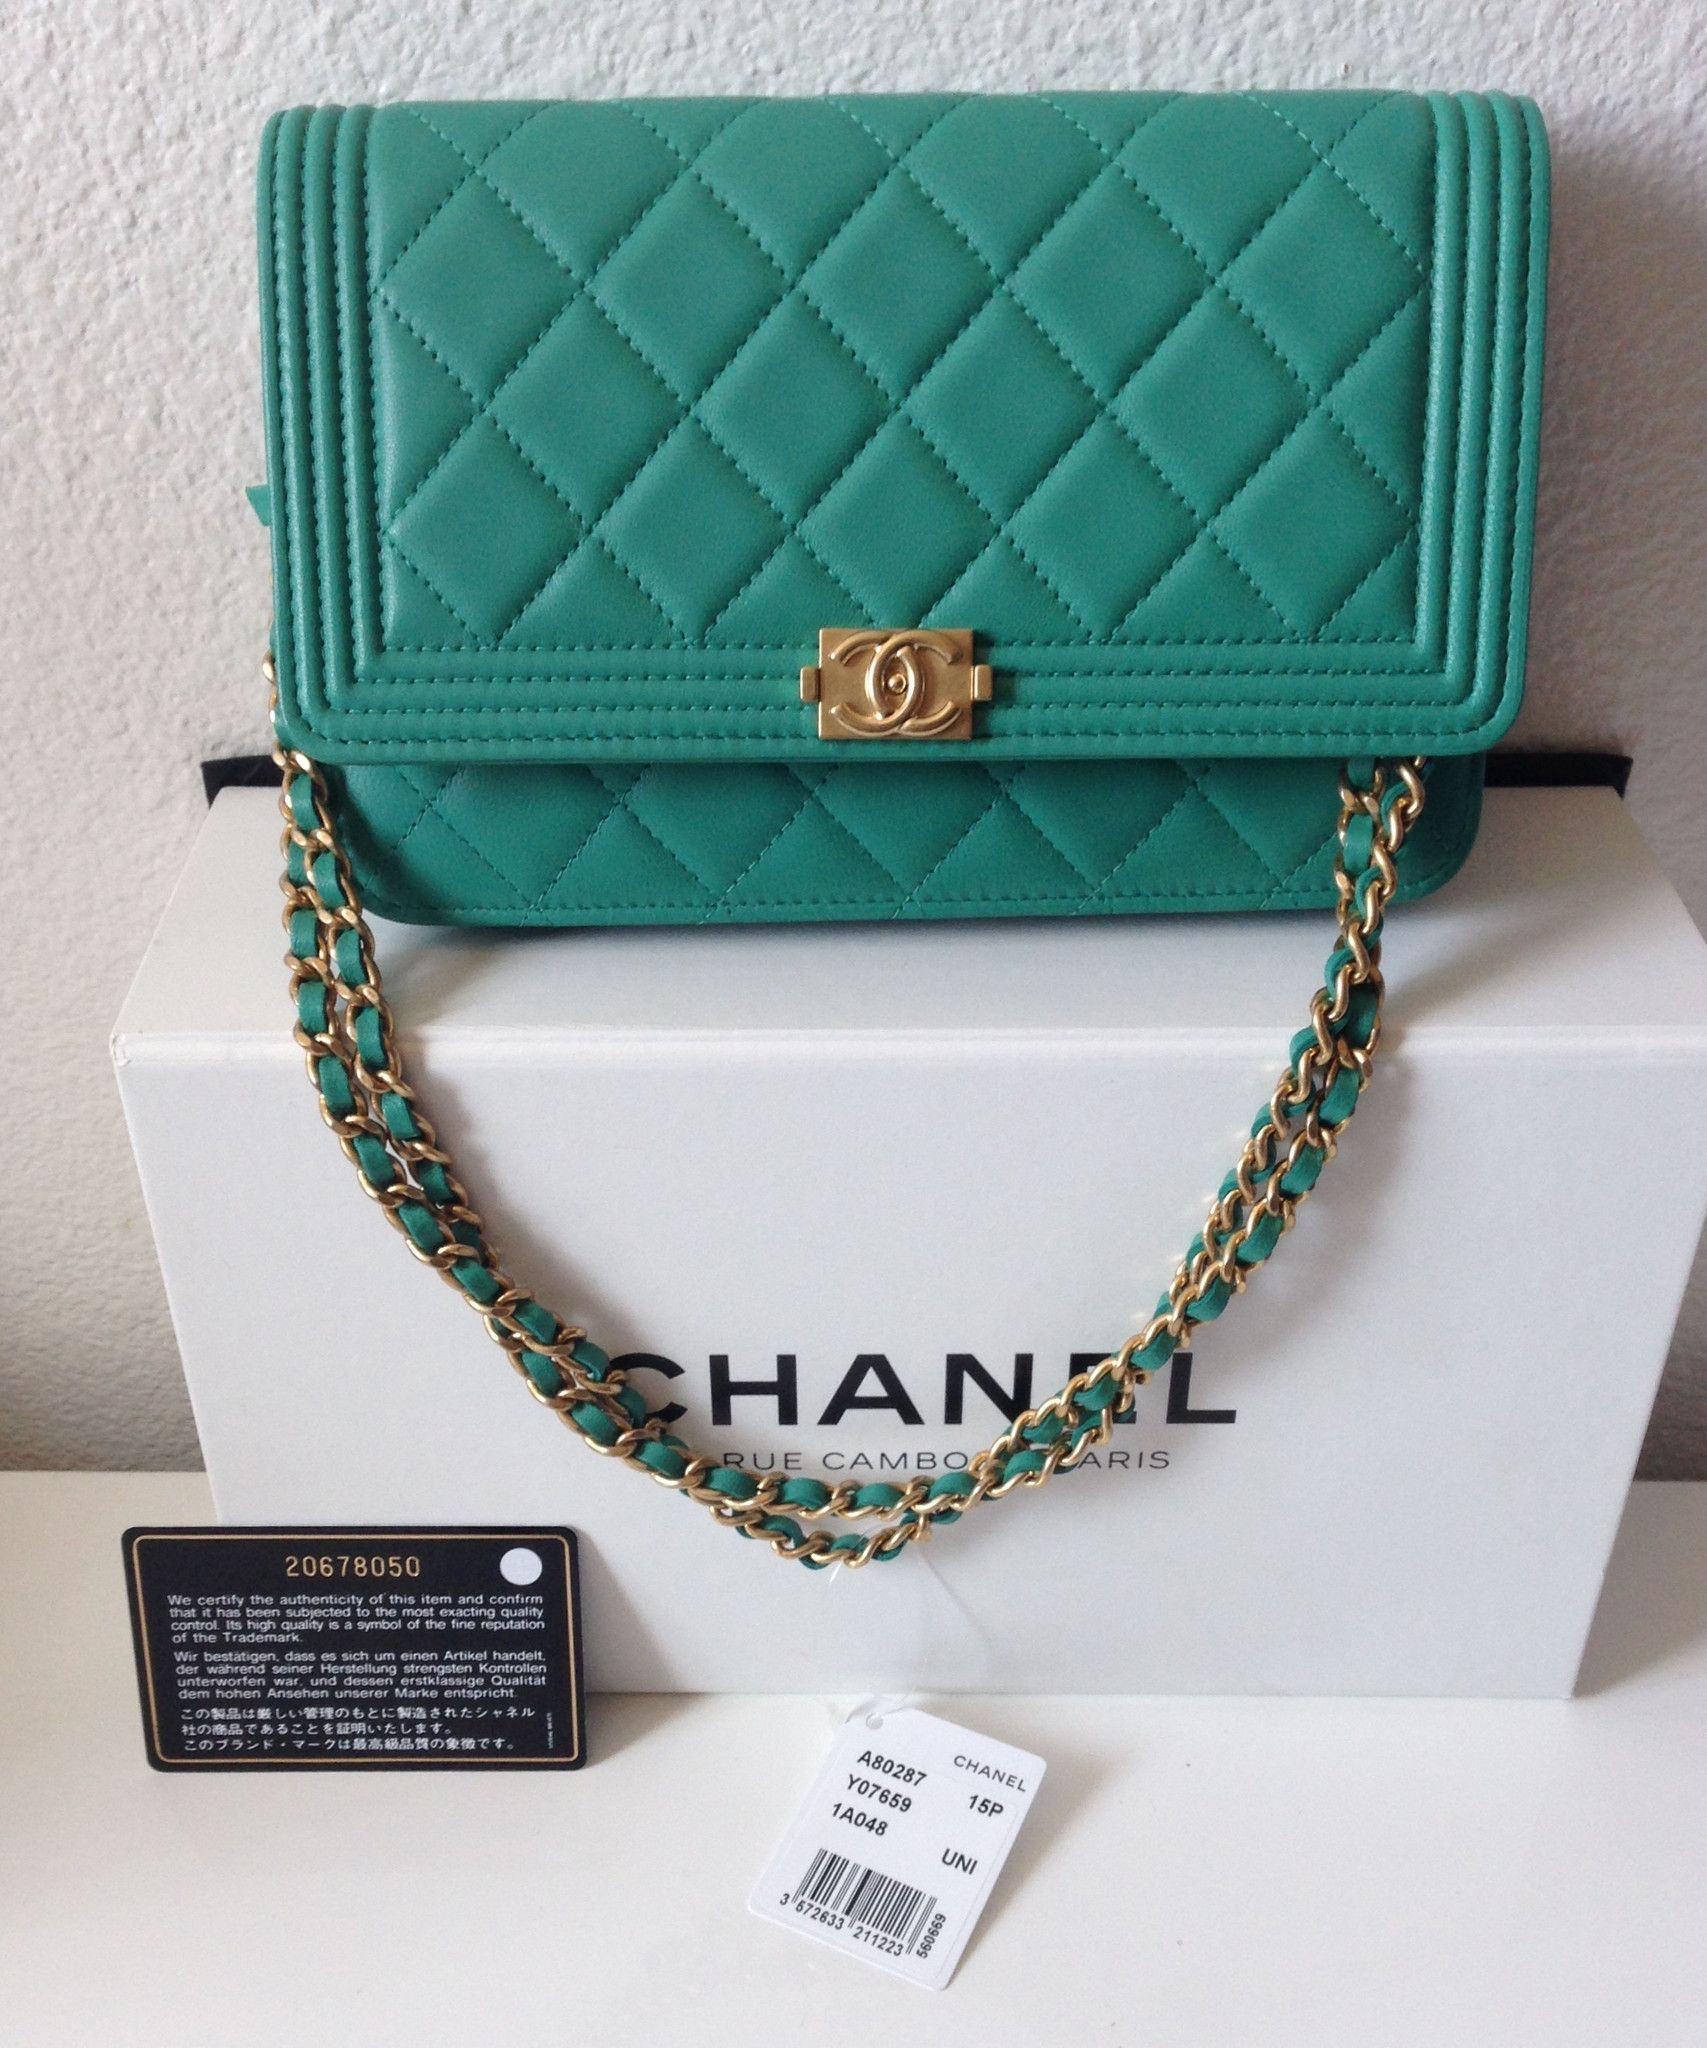 0a40e7b91ee6 NEW-Chanel Boy Woc Wallet on Chain Ghw Clutch Flap Mint Green Cross Body Bag